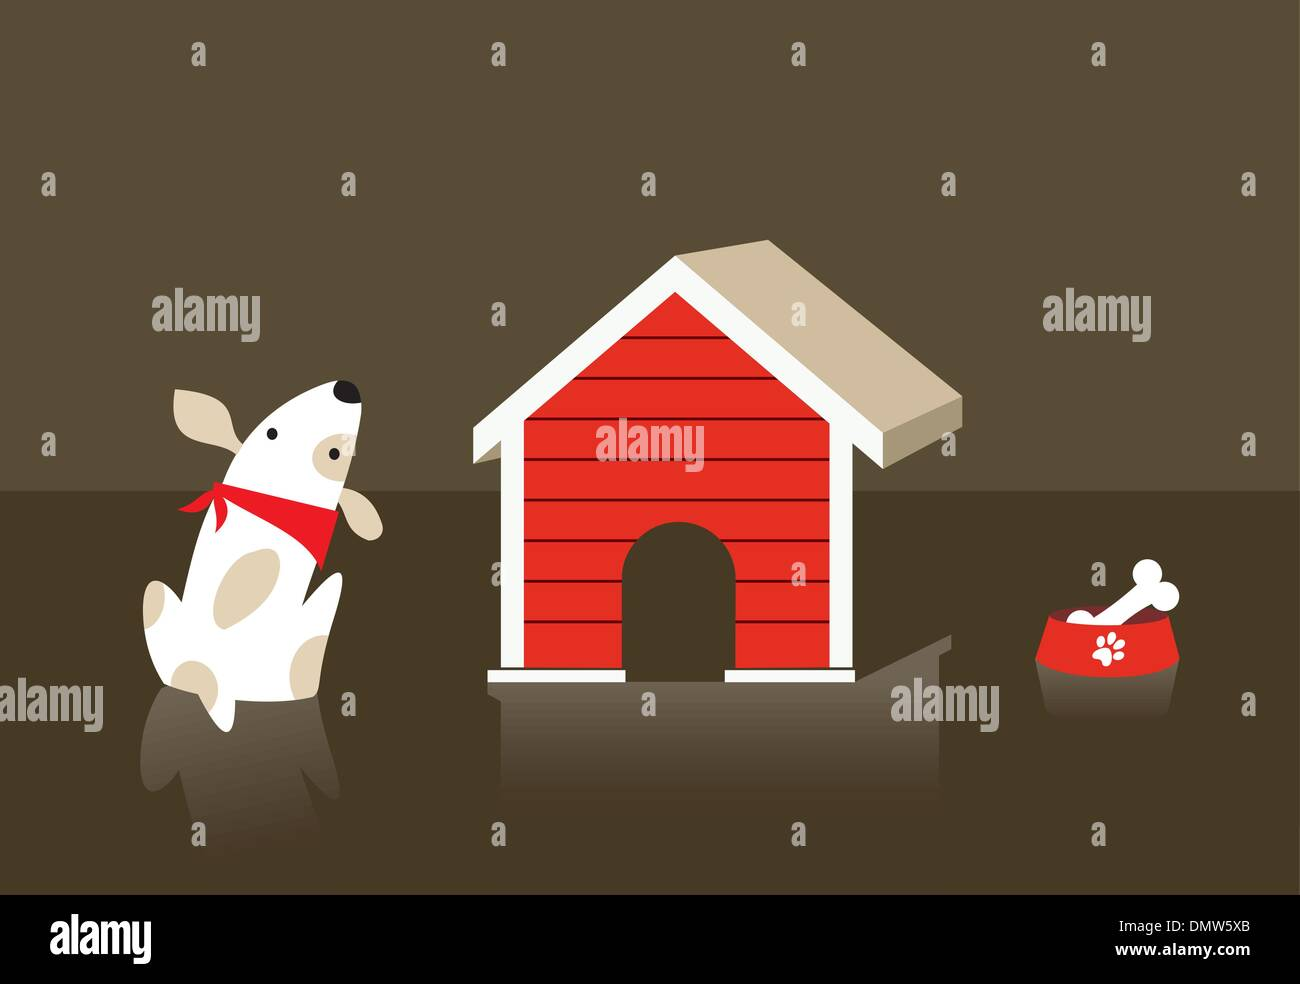 The dog and cat relation - Stock Image